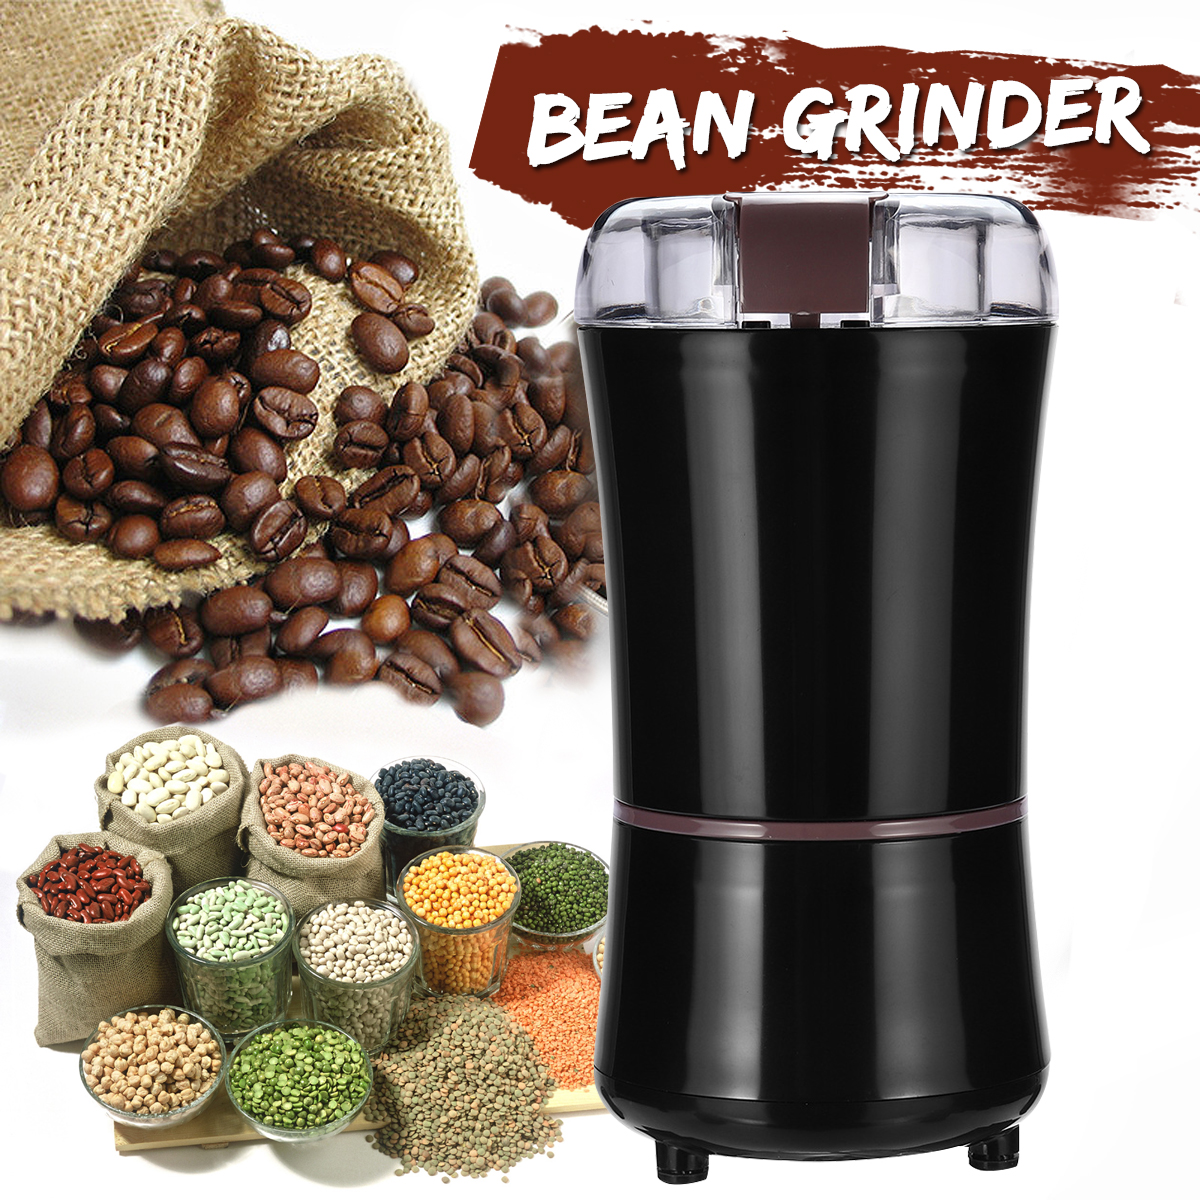 1Pcs EU Plug Coffee Grinder Universal Multi-functional Herbs/Spices/Nuts/Grains/Coffee Bean Safe Grinding machine худи print bar флаг азербайджана